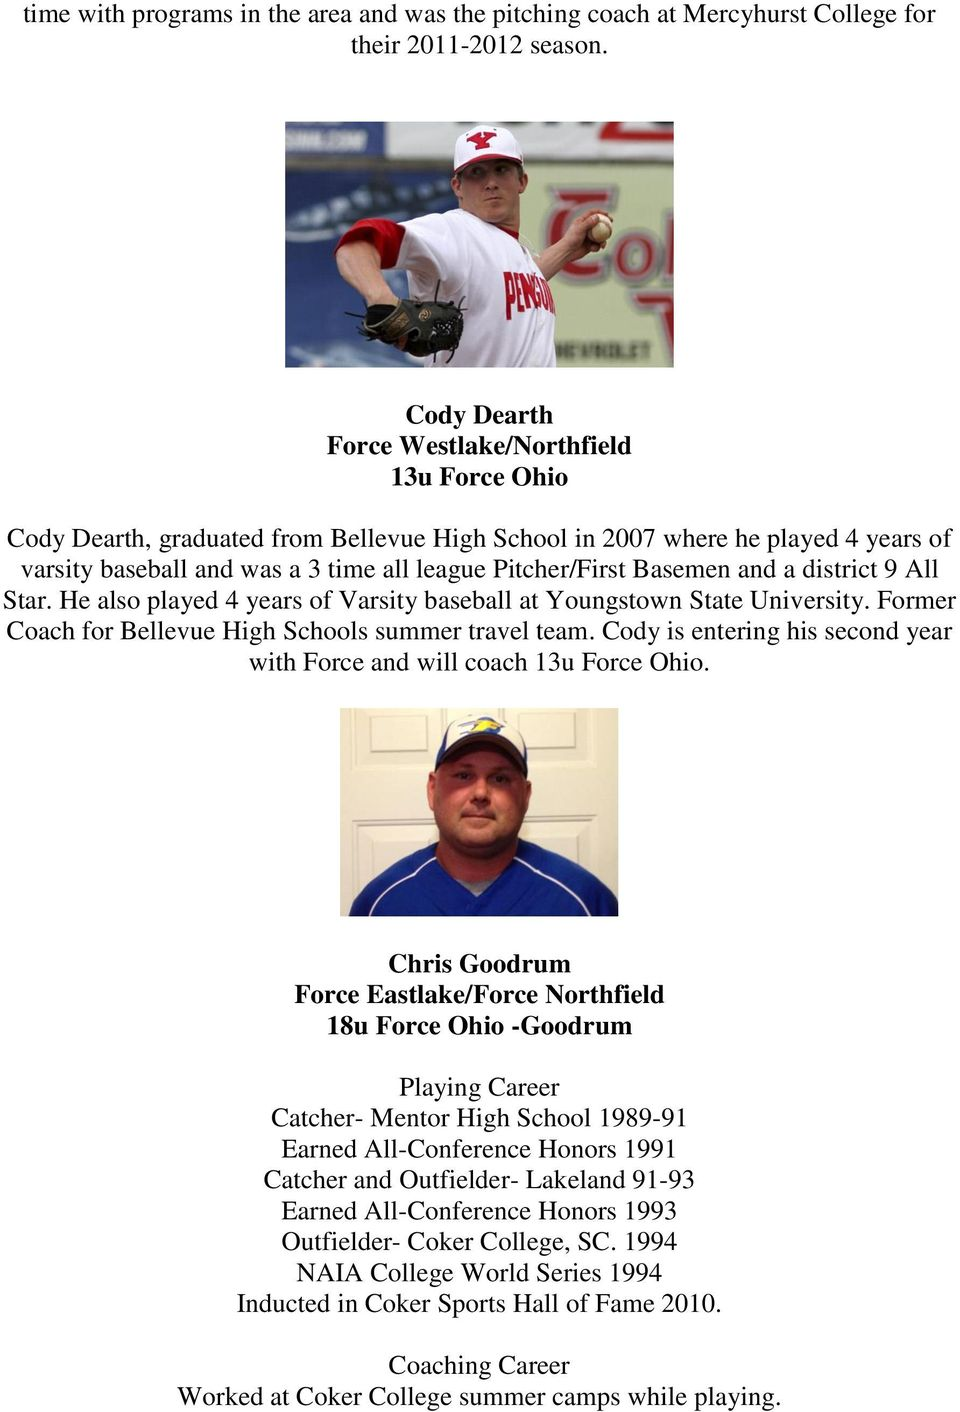 district 9 All Star. He also played 4 years of Varsity baseball at Youngstown State University. Former Coach for Bellevue High Schools summer travel team.